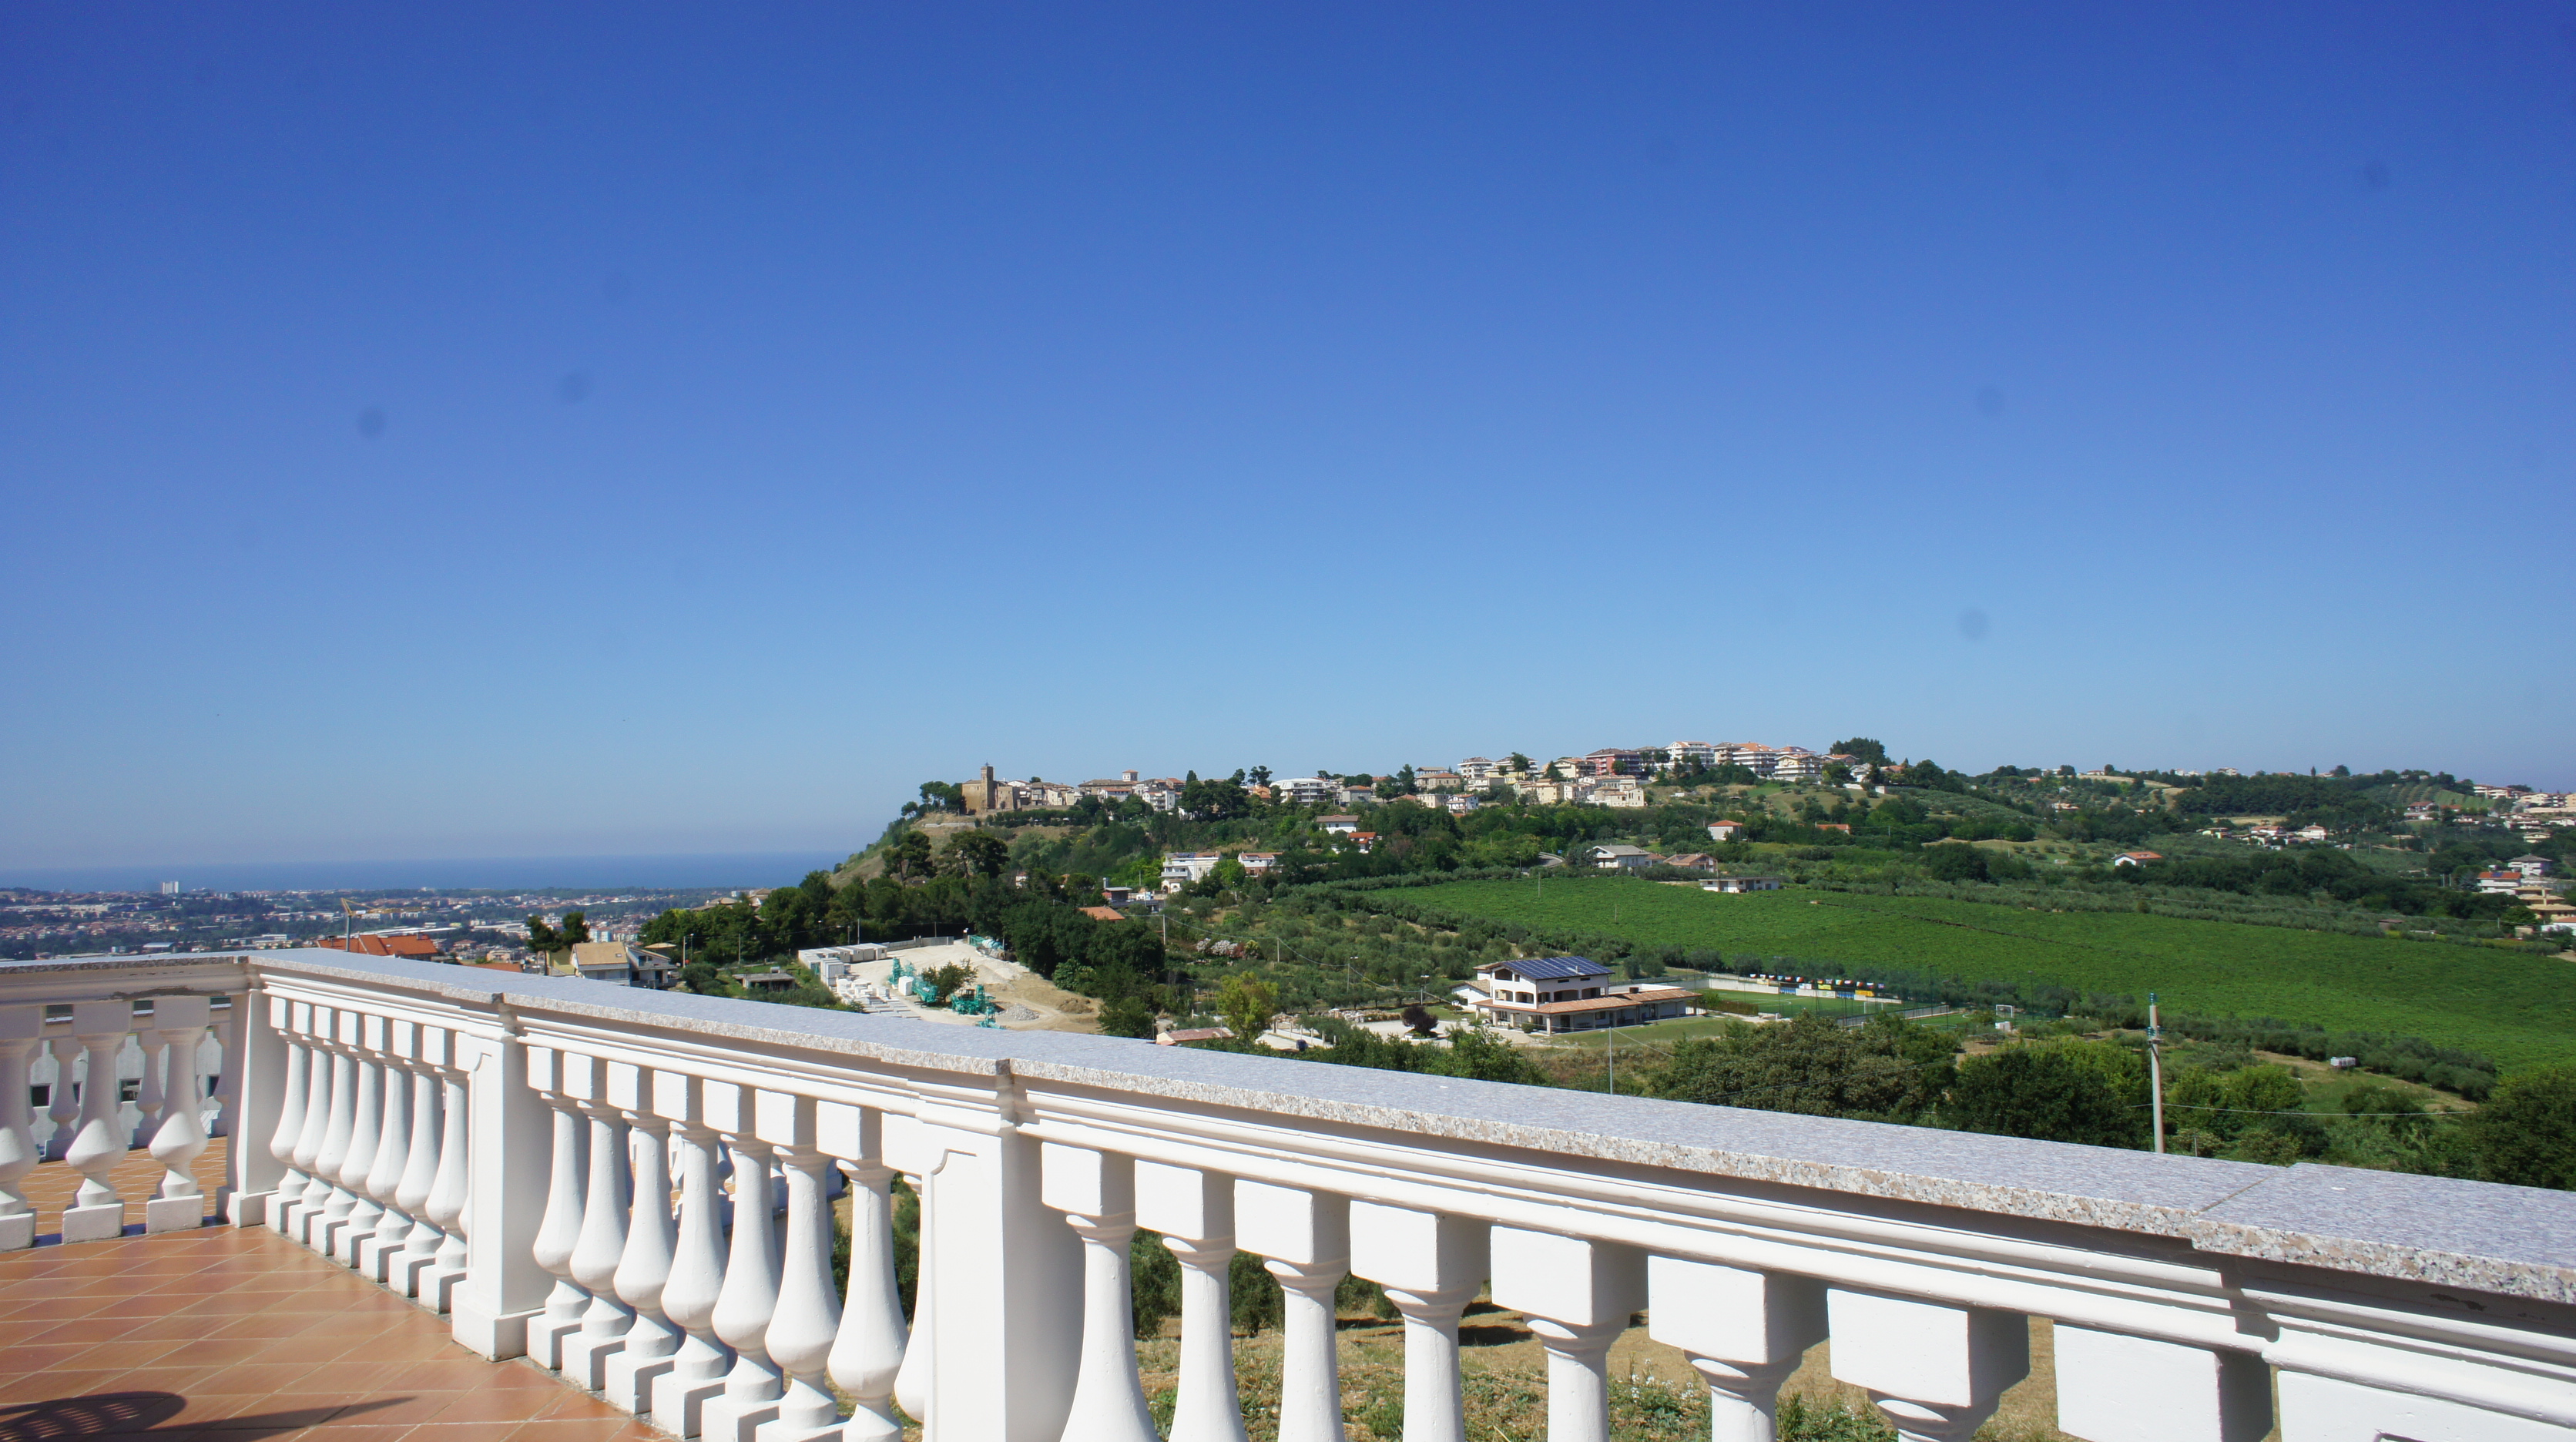 abruzzo villas - photo#49